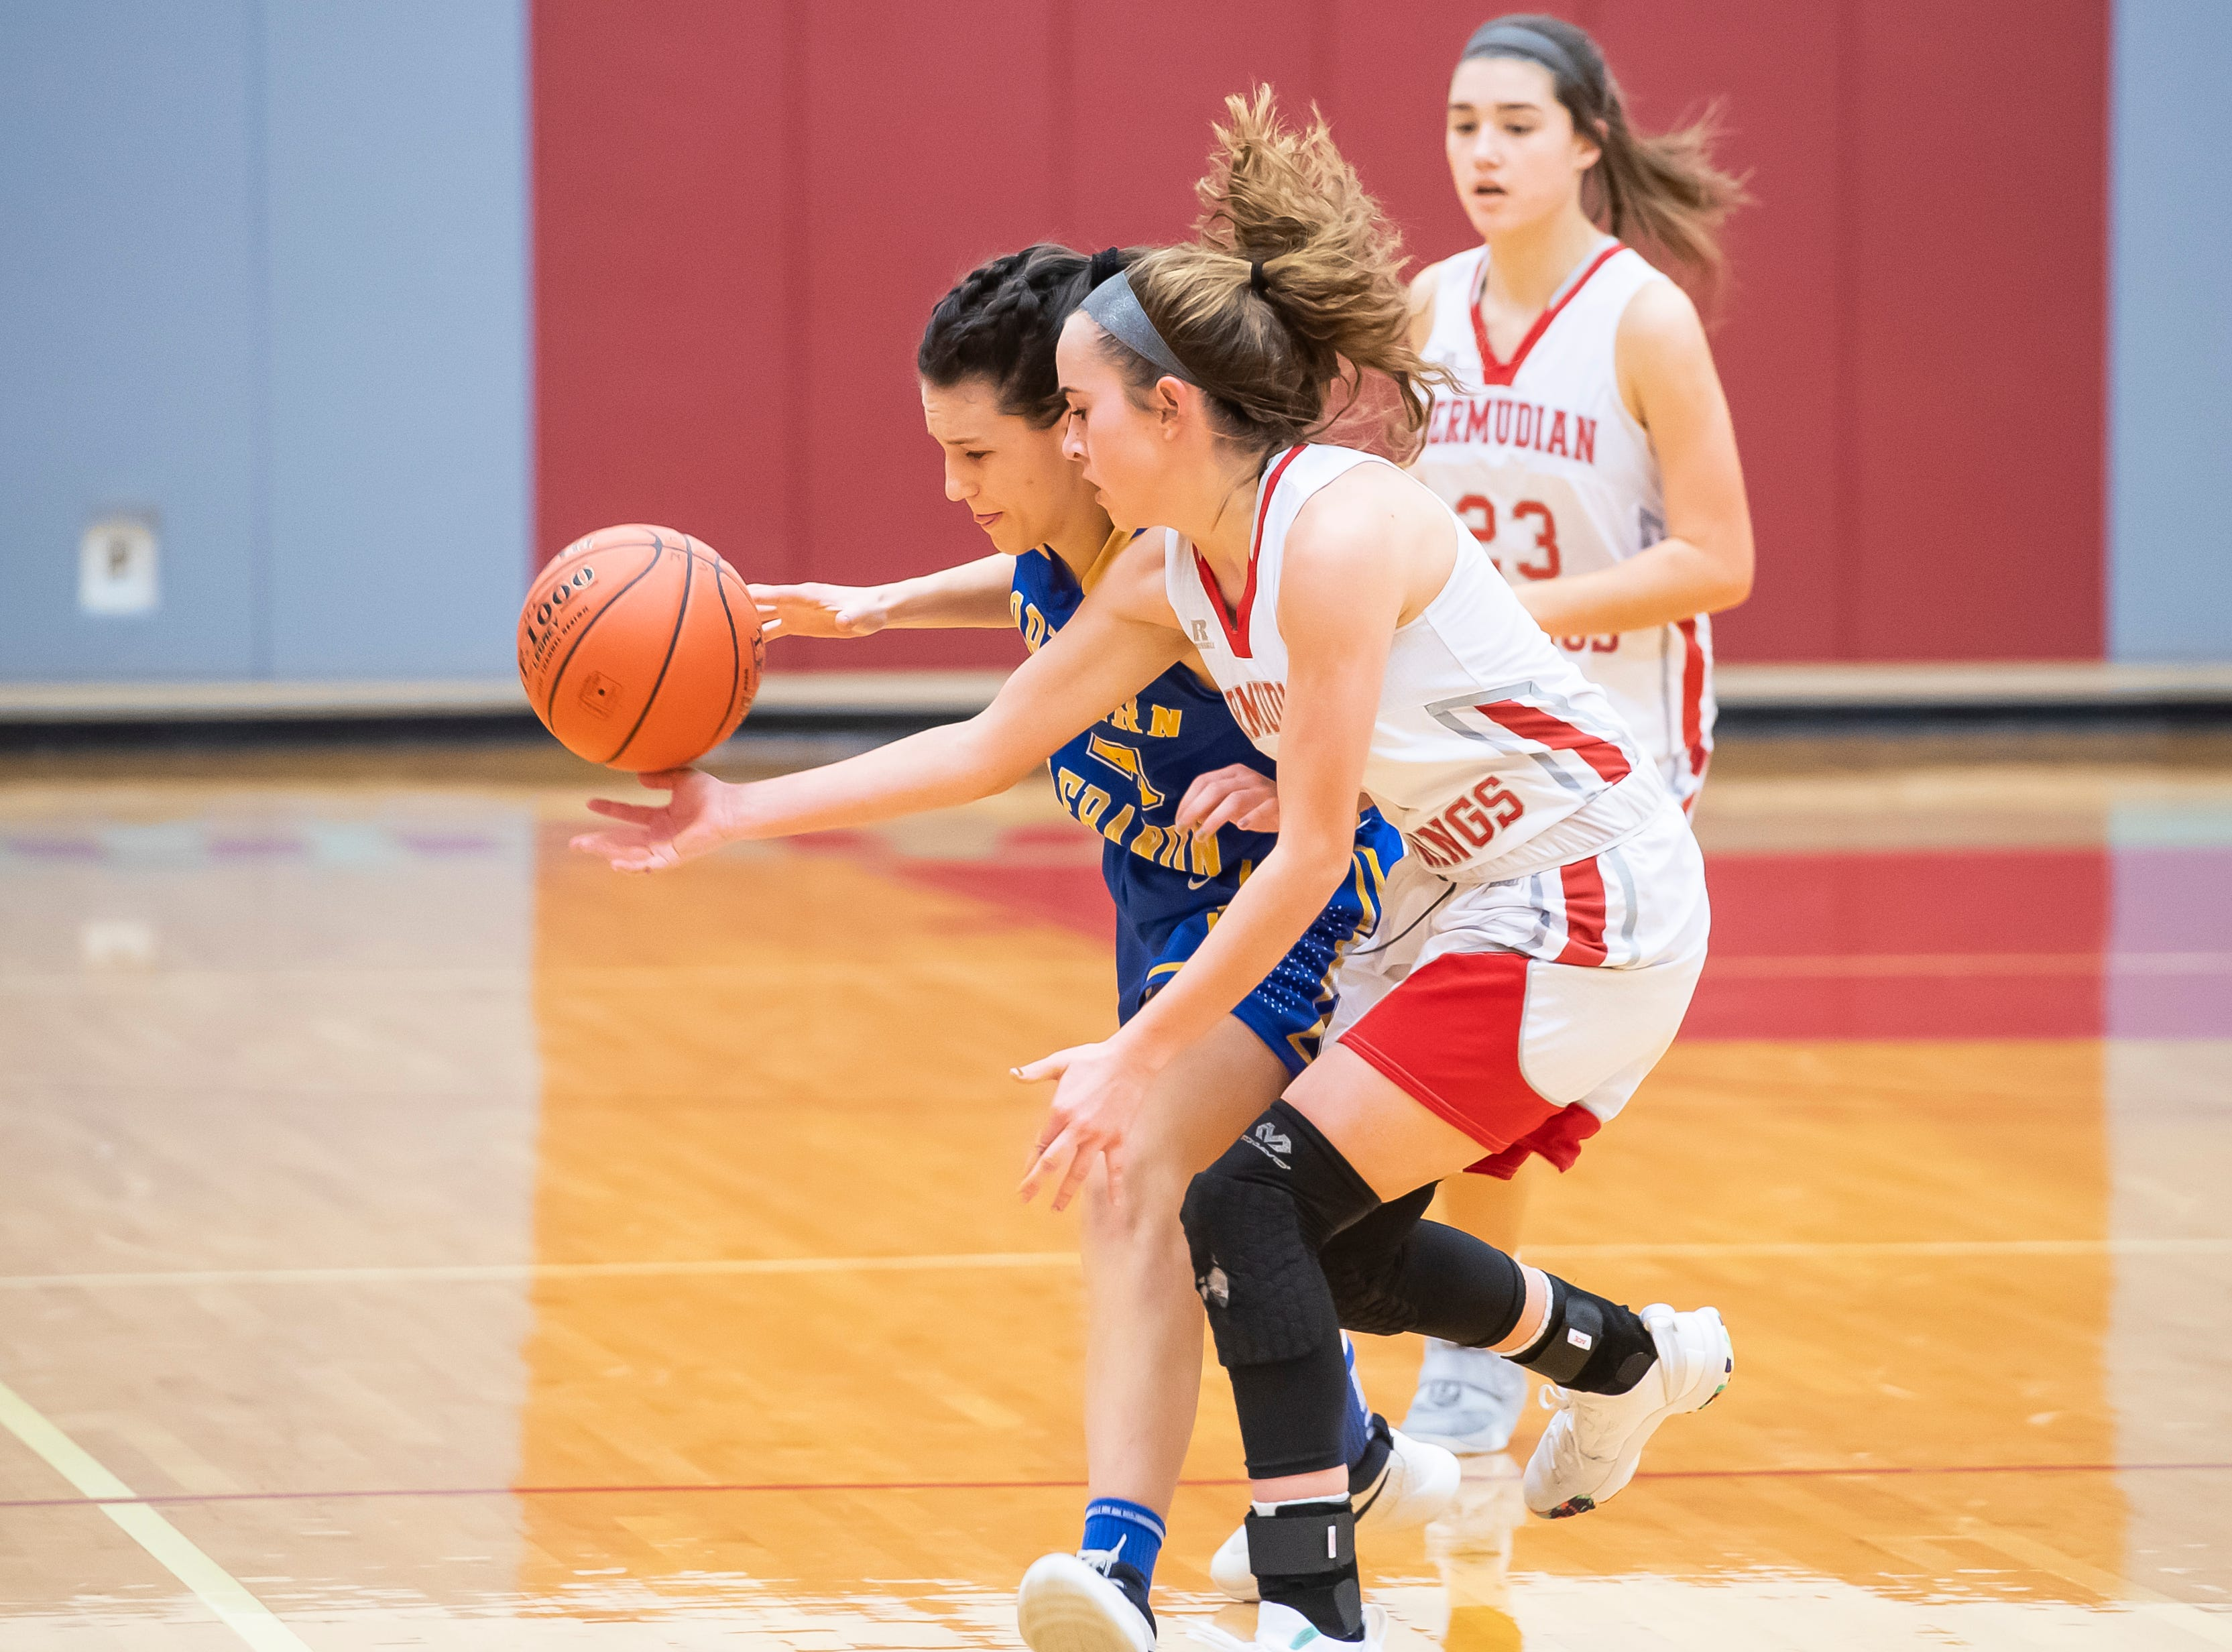 Bermudian Springs' Skyler West, right, pokes the ball out of the hands of Northern Lebanon's Zara Zerman in the first round of the District III 4-A playoffs Tuesday, February 19, 2019. The Eagles won 58-52.